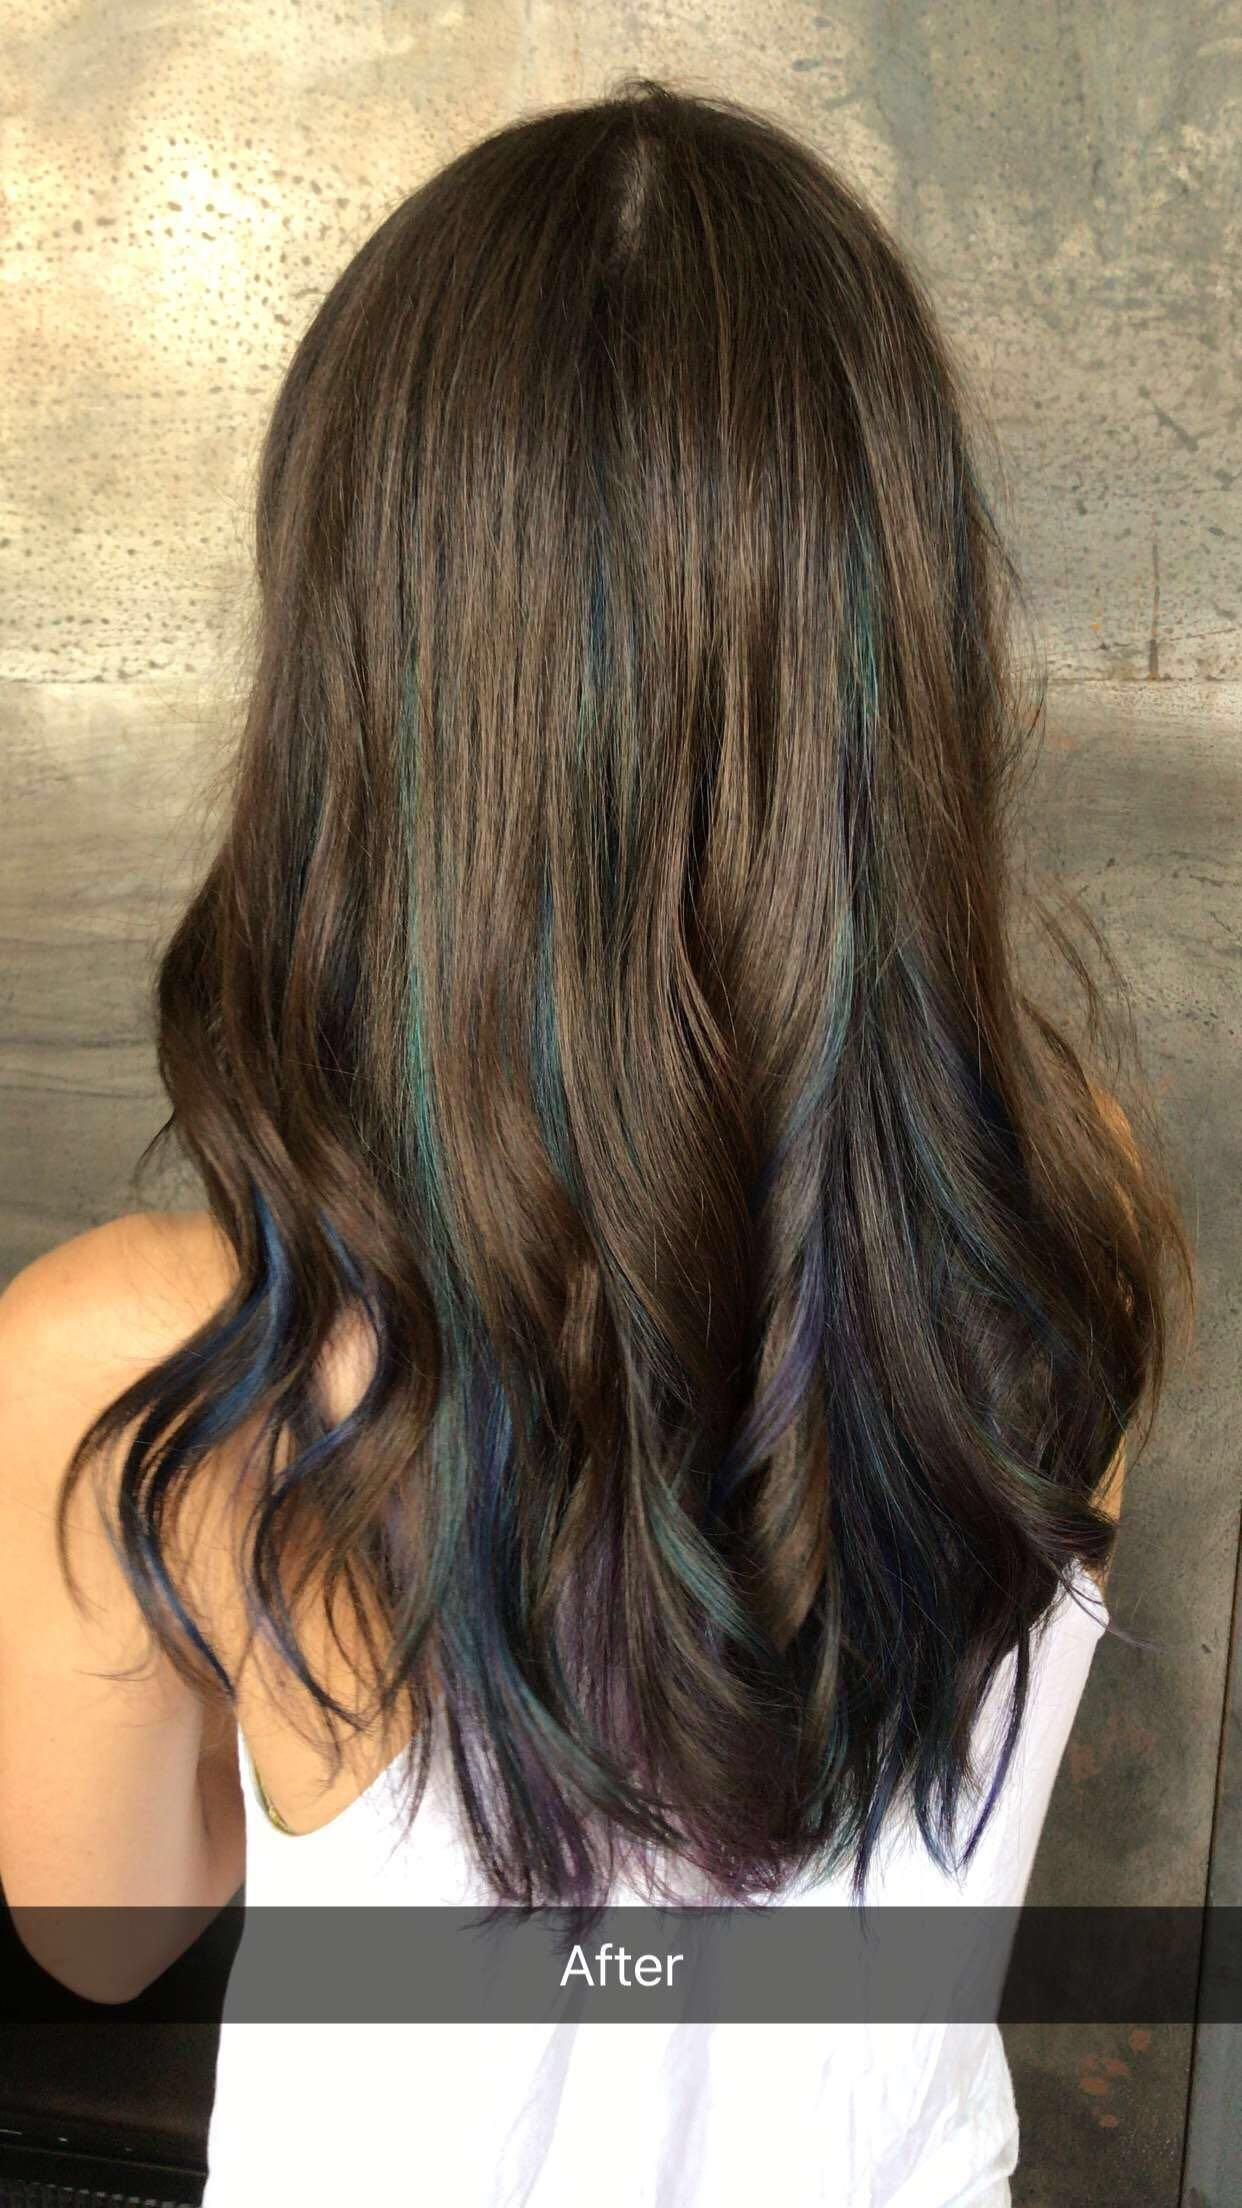 20 ombre blue colors hairstyles ideas   hairstyles   oil